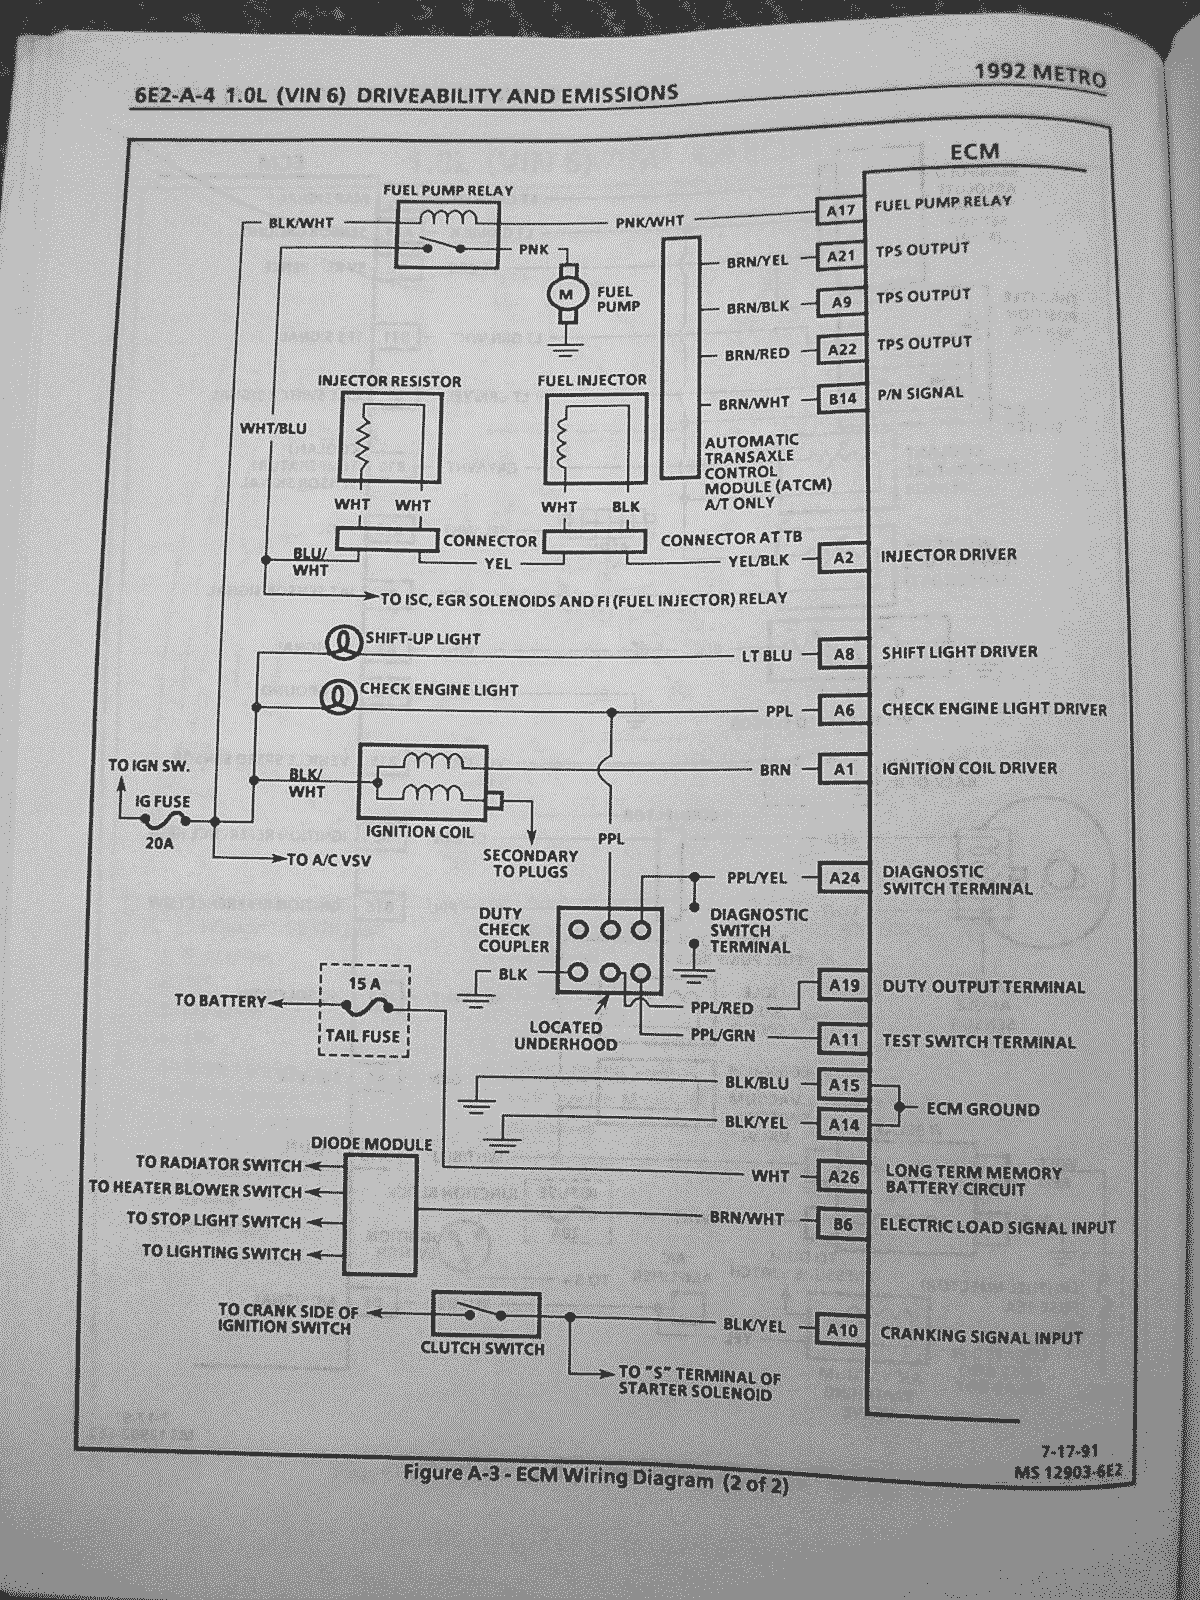 6e2 a 4 geo metro and suzuki swift wiring diagrams metroxfi com Suzuki Wire at eliteediting.co